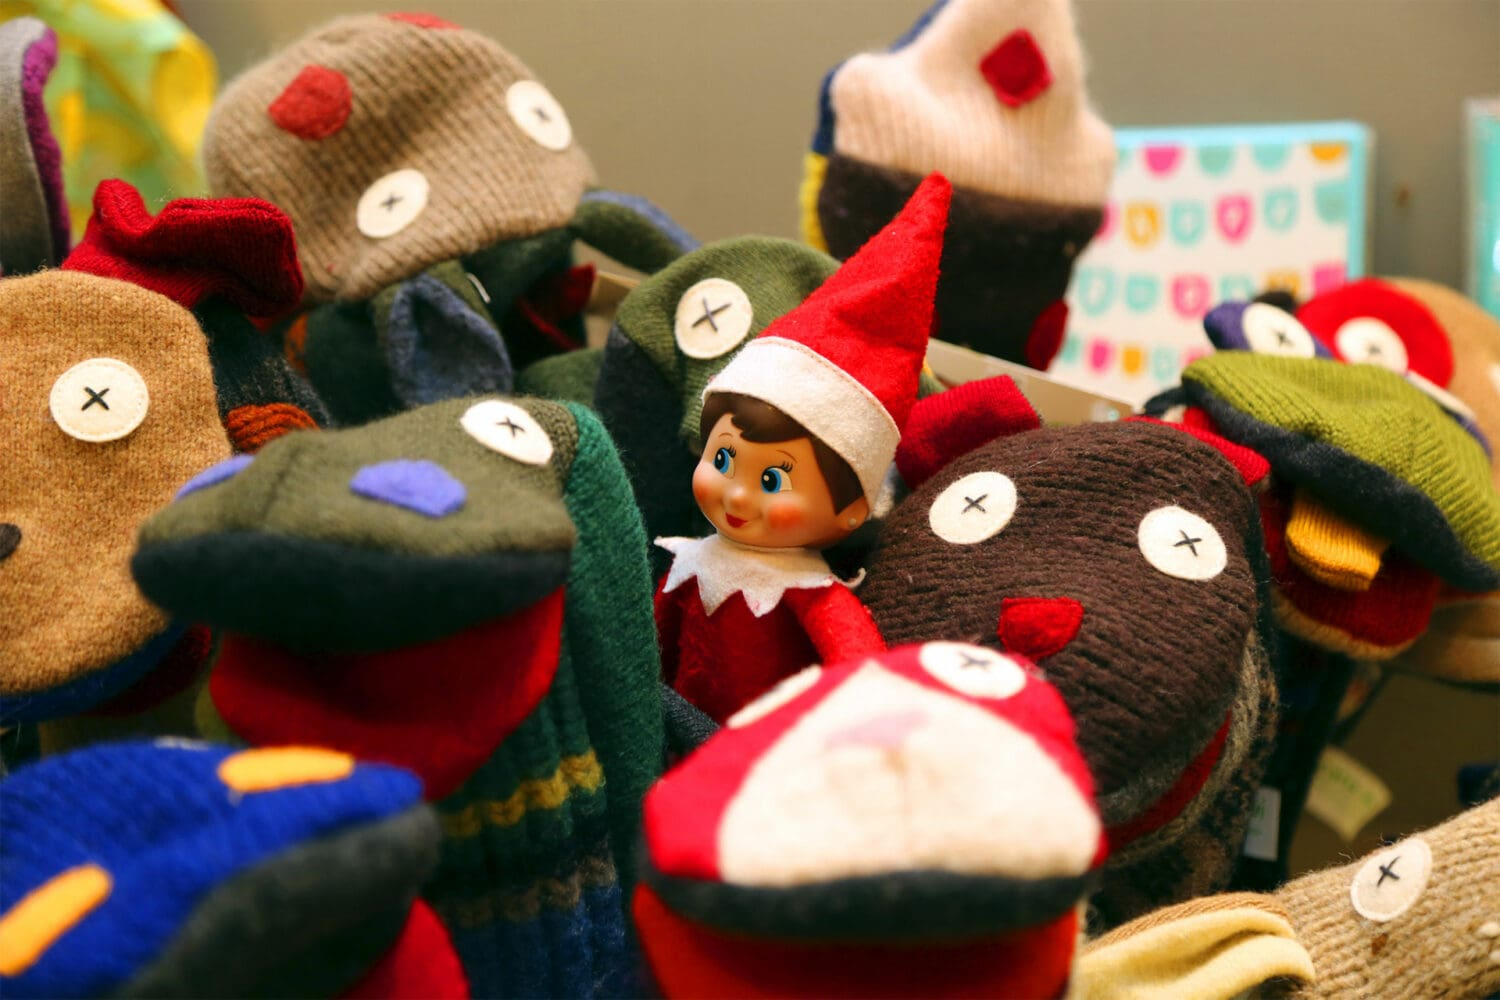 Patty, Ravenswood's neighborhood Elf on the Shelf, visits a local business